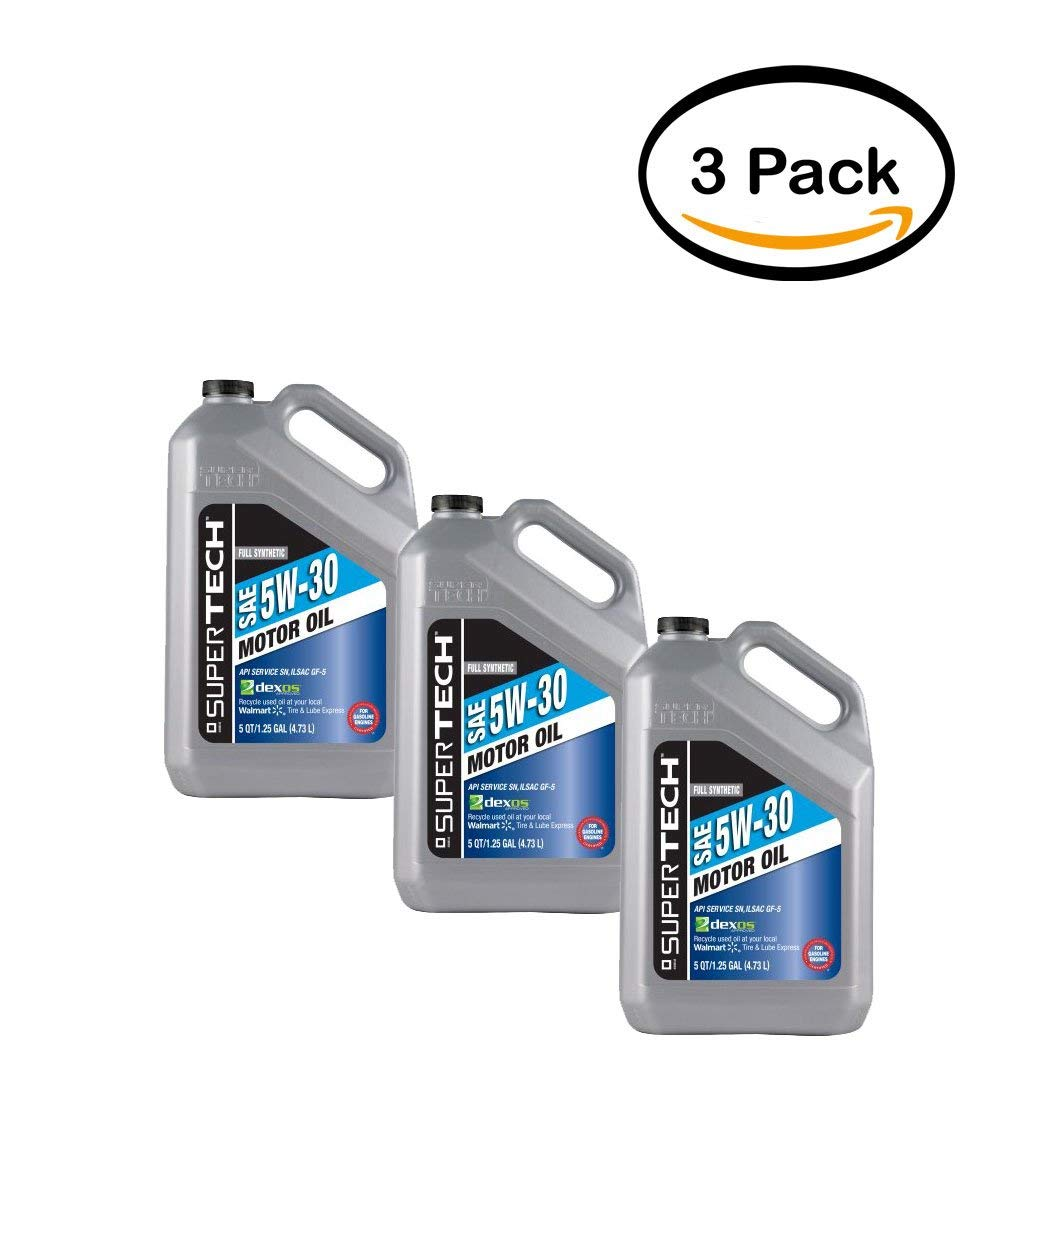 Buy Super Tech Full Synthetic Oil 5W20 5 qt in Cheap Price